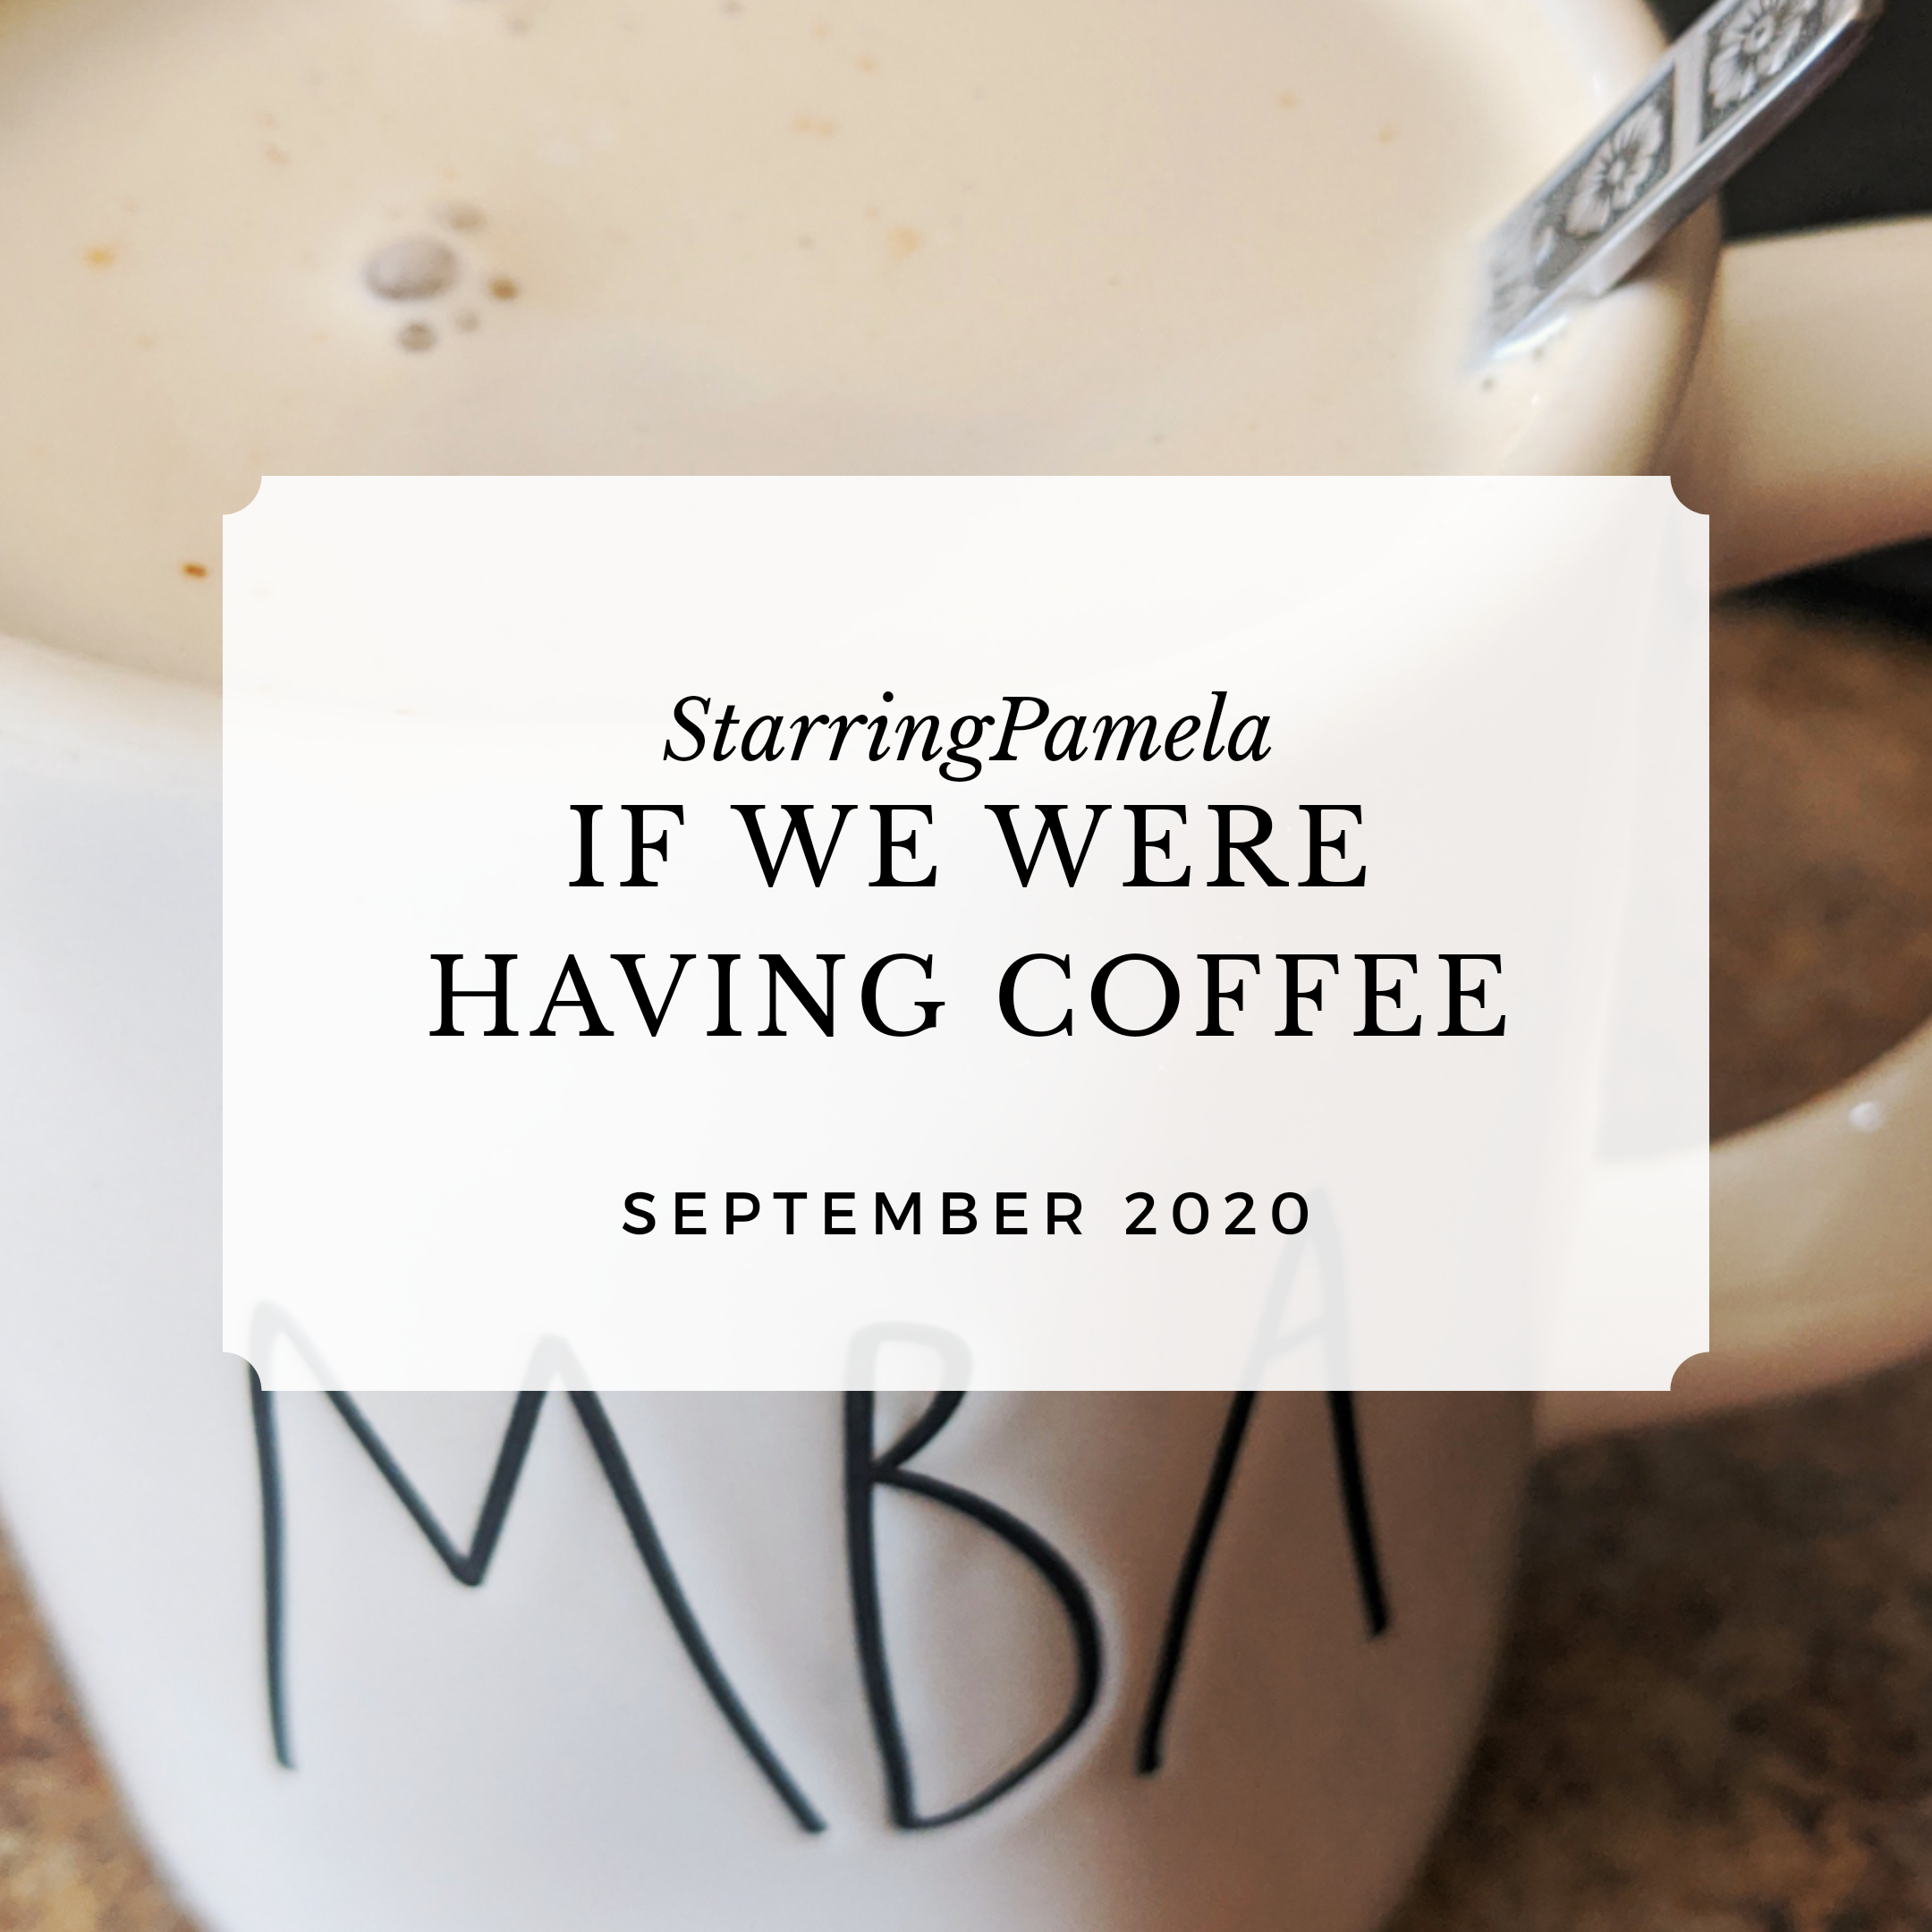 if we were having coffee september 2020 featured image